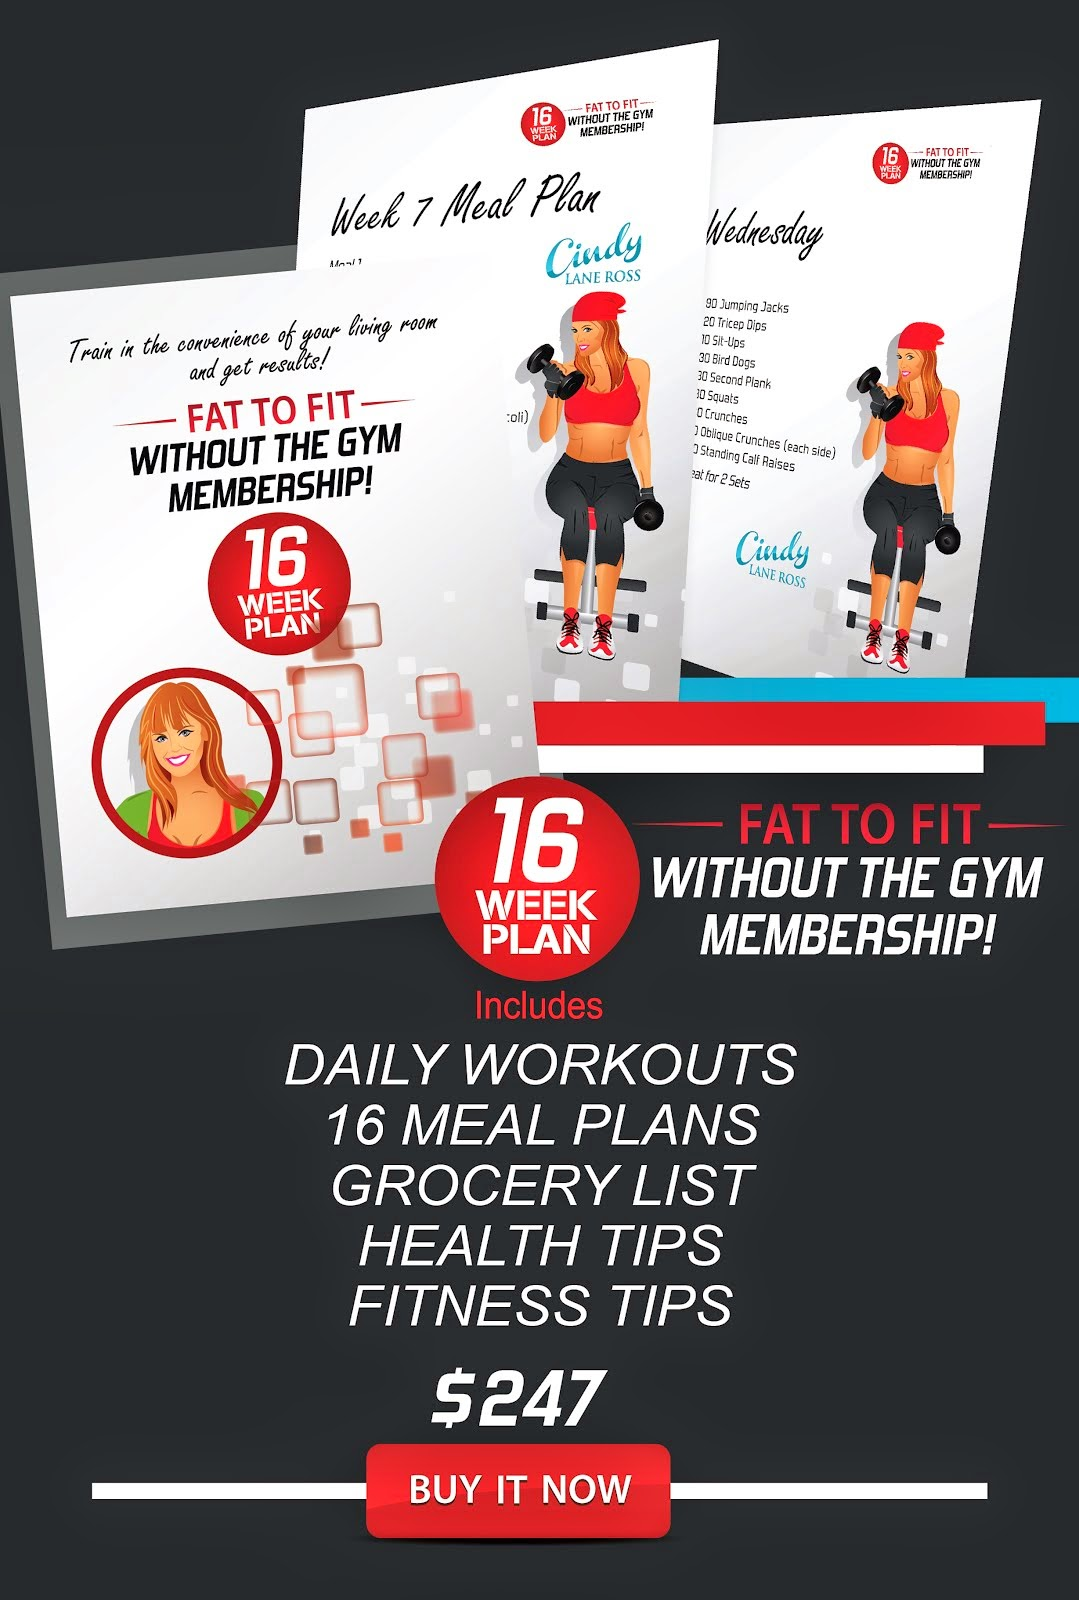 Fat to Fit without the Gym Membership 16 Week Plan